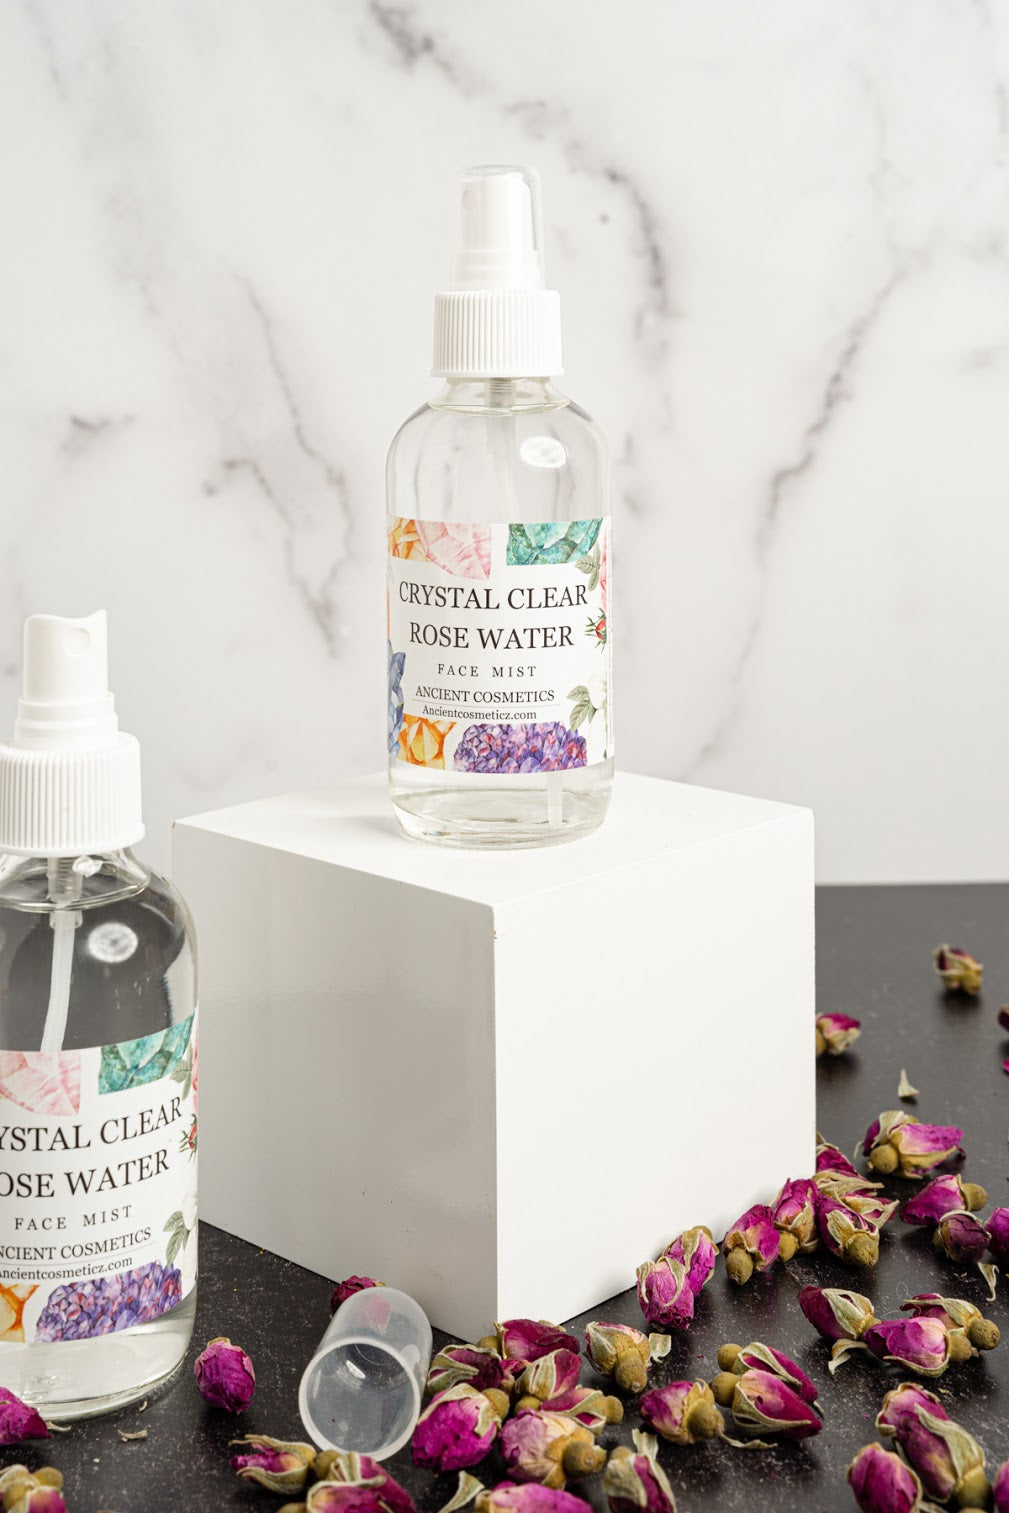 Crystal Clear Rose Water Face Mist